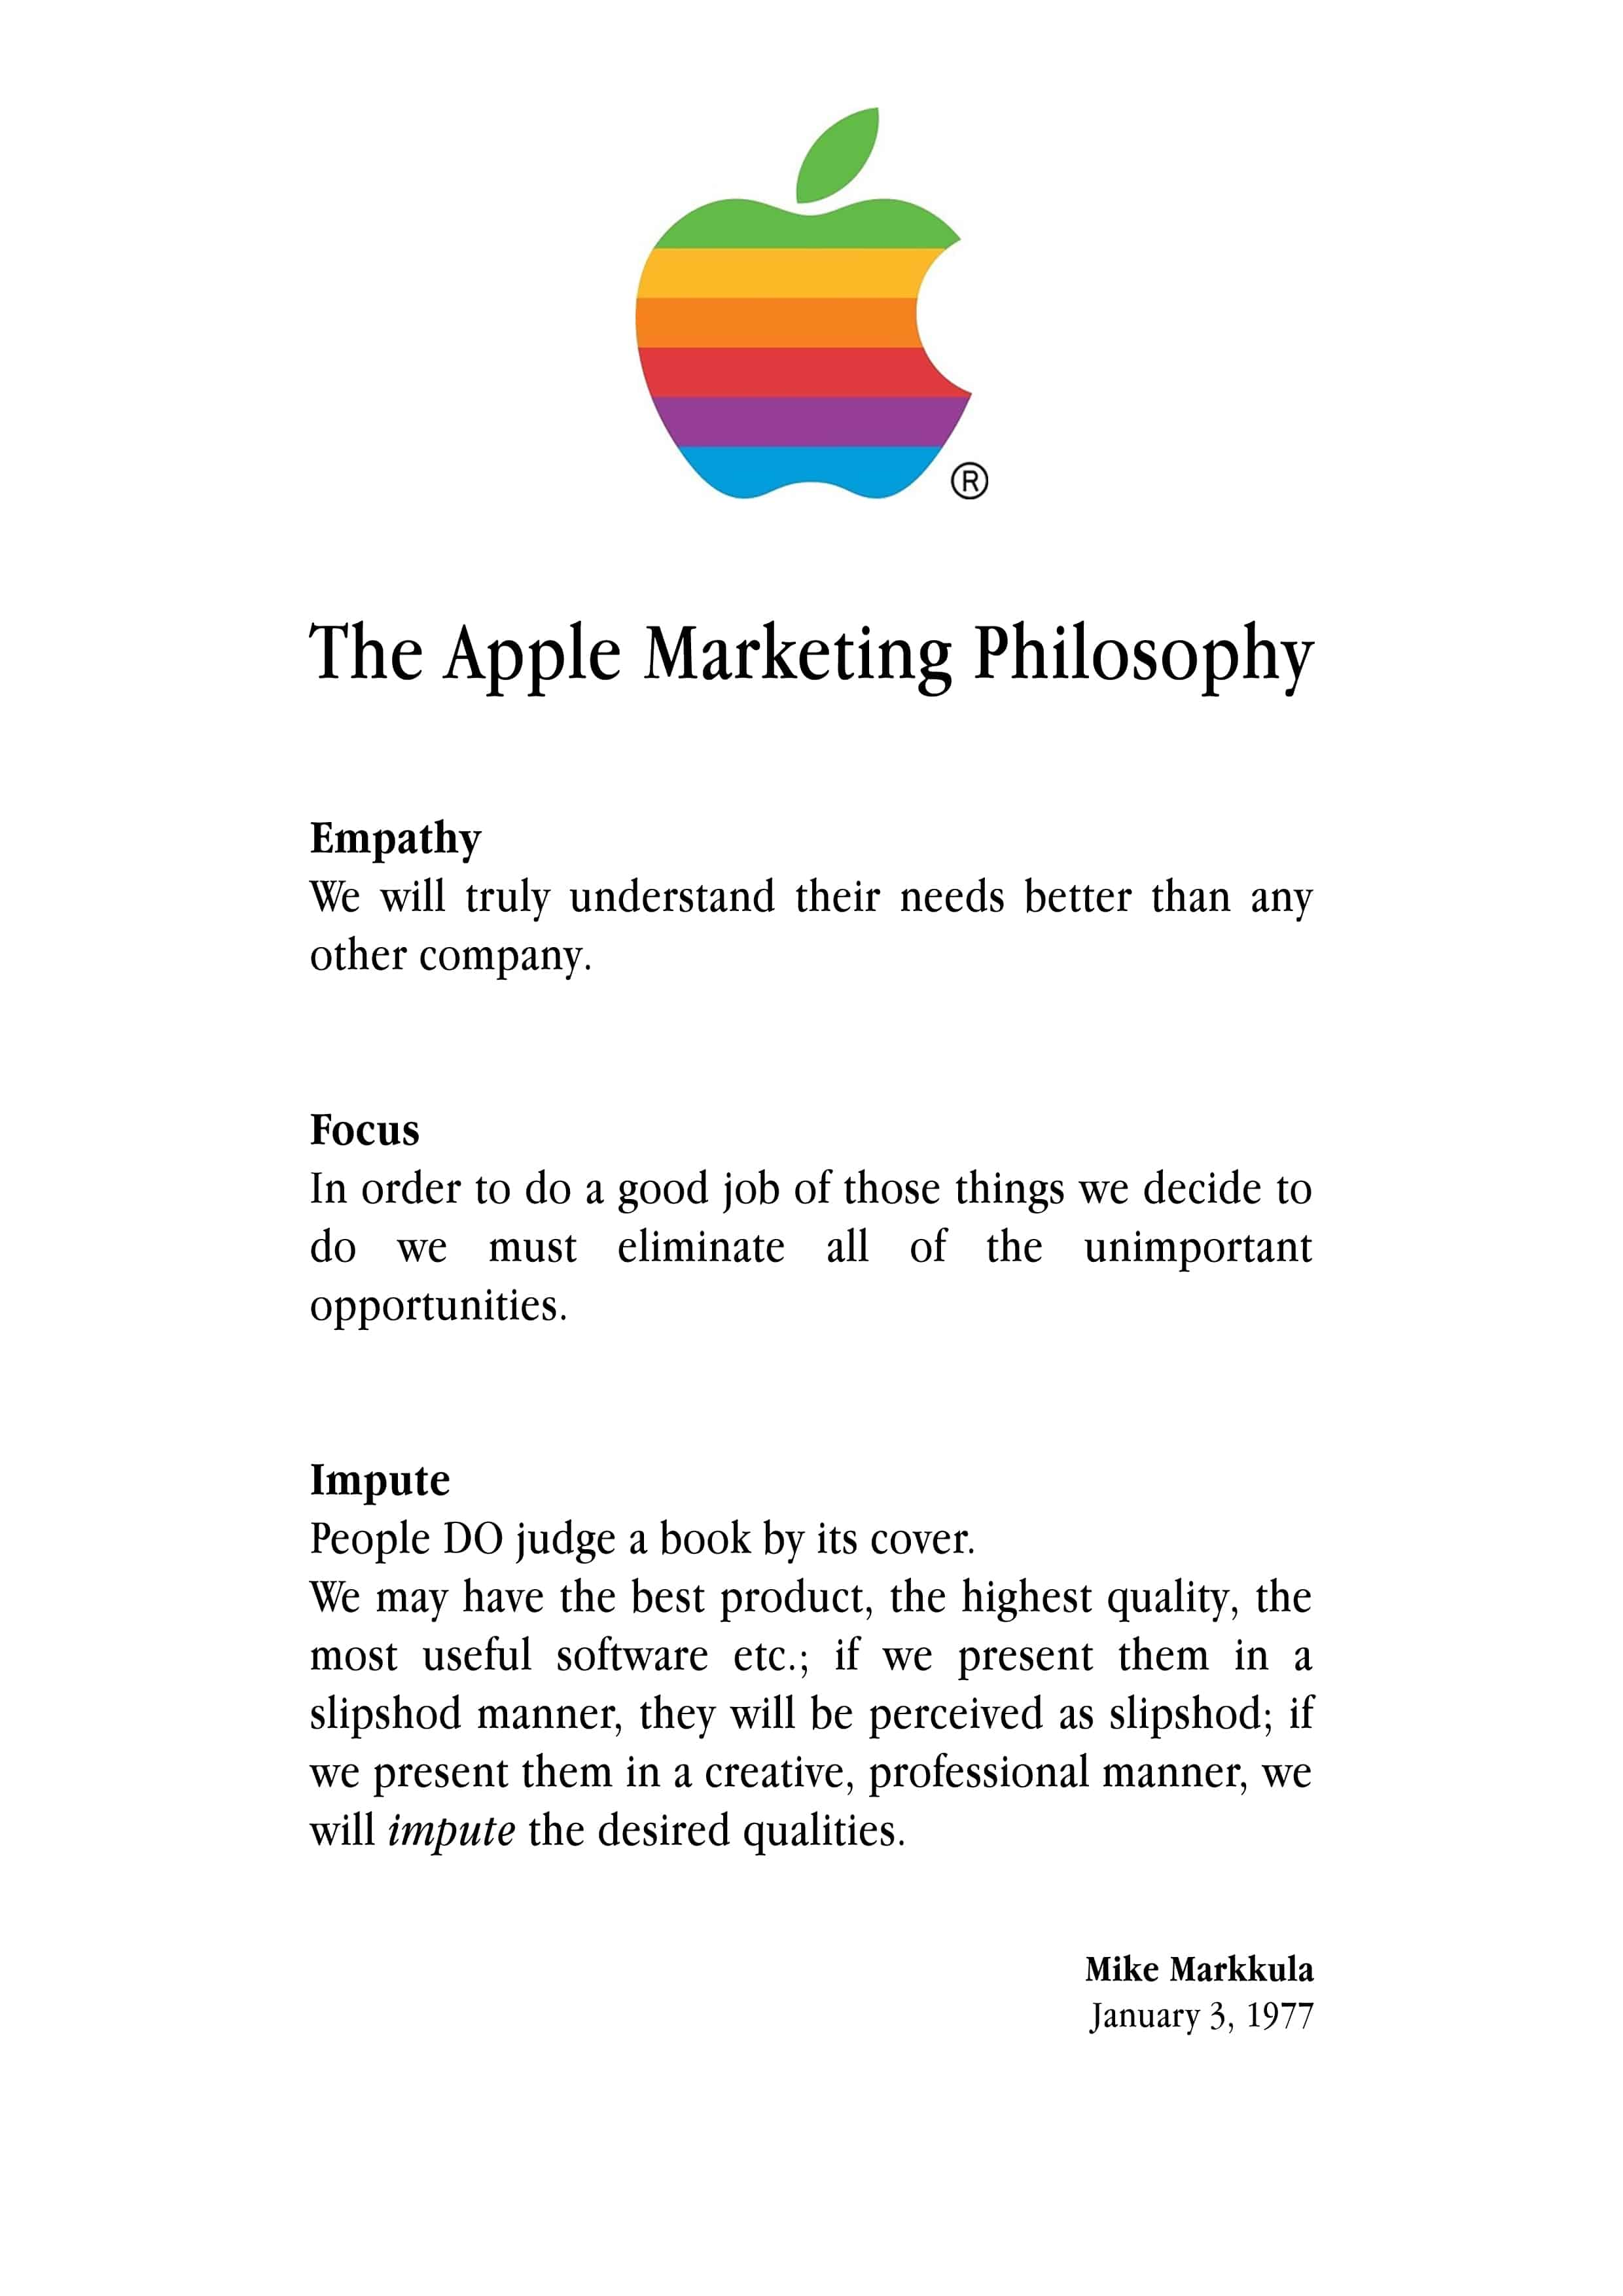 the history of apple and ipod marketing essay As mentioned above apple ipod received a decrease in sales, it is suggested that apple ipod change one of your marketing strategies to solve this problem apple ipod should introduce a public relations scheme to improve the relationship between the company and their markets.